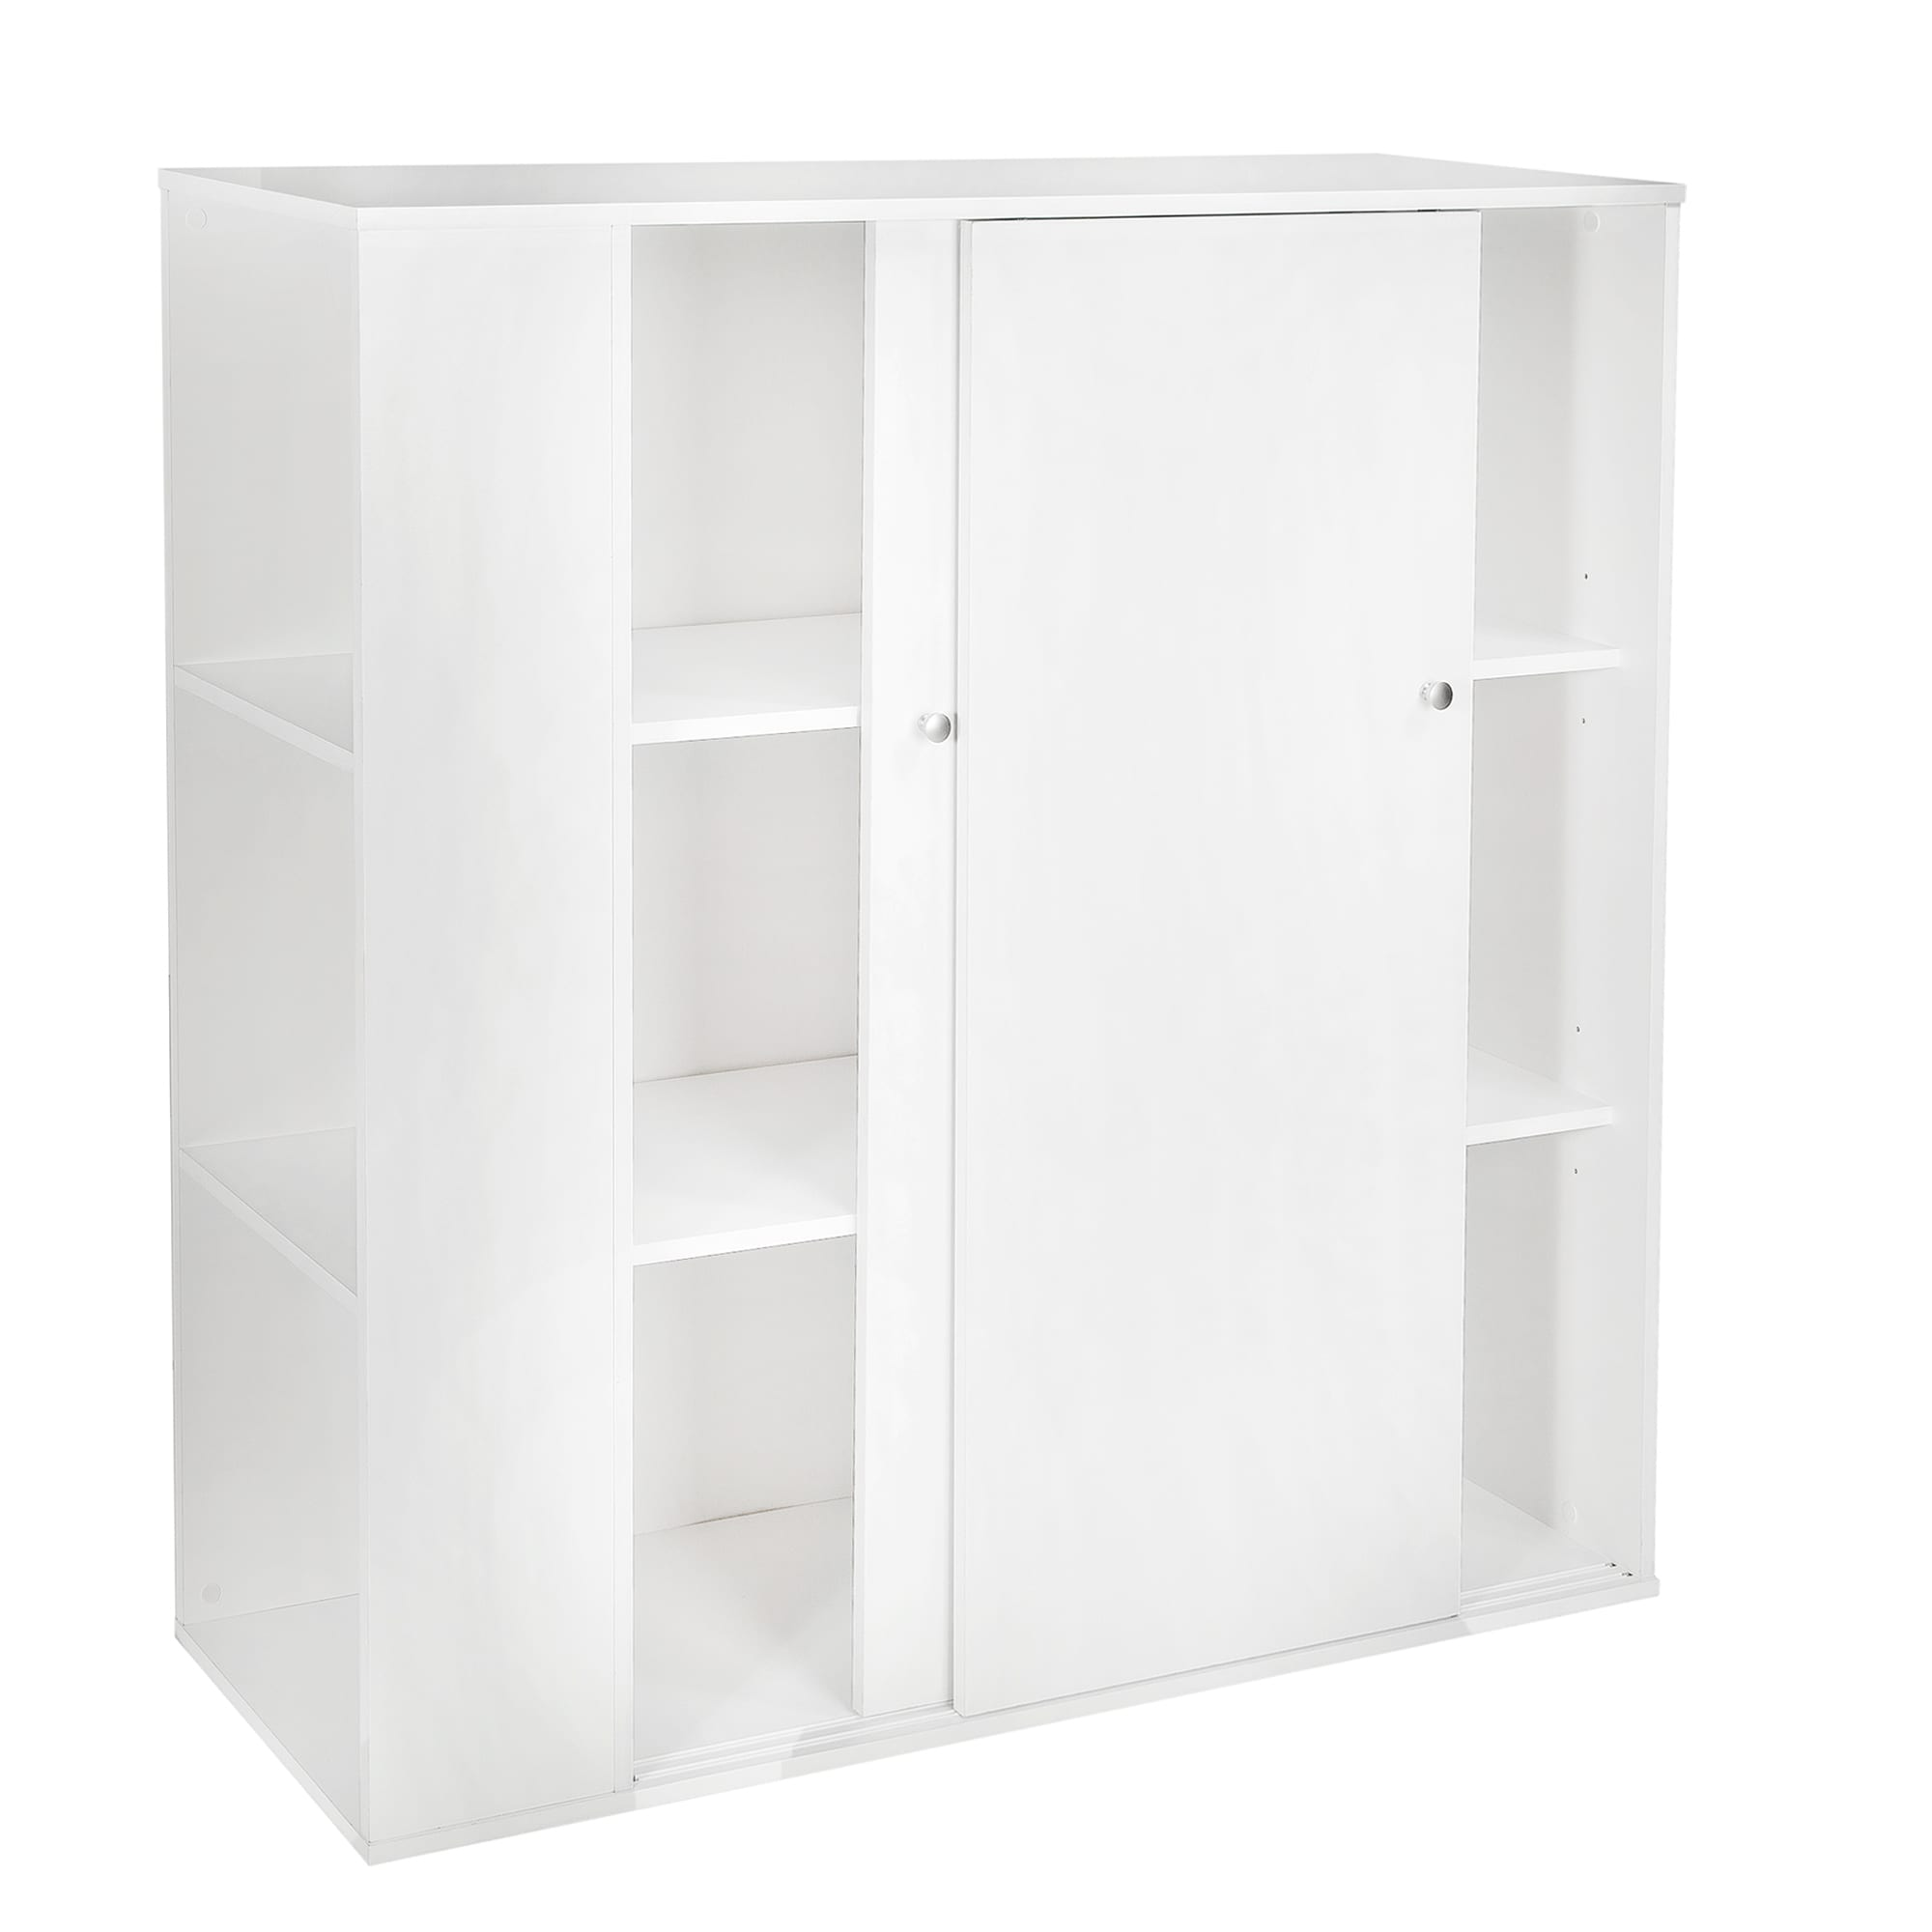 Charmant Shop South Shore Storit Pure White Sliding Door Kidu0027s Storage Cabinet   On  Sale   Free Shipping Today   Overstock.com   9809666